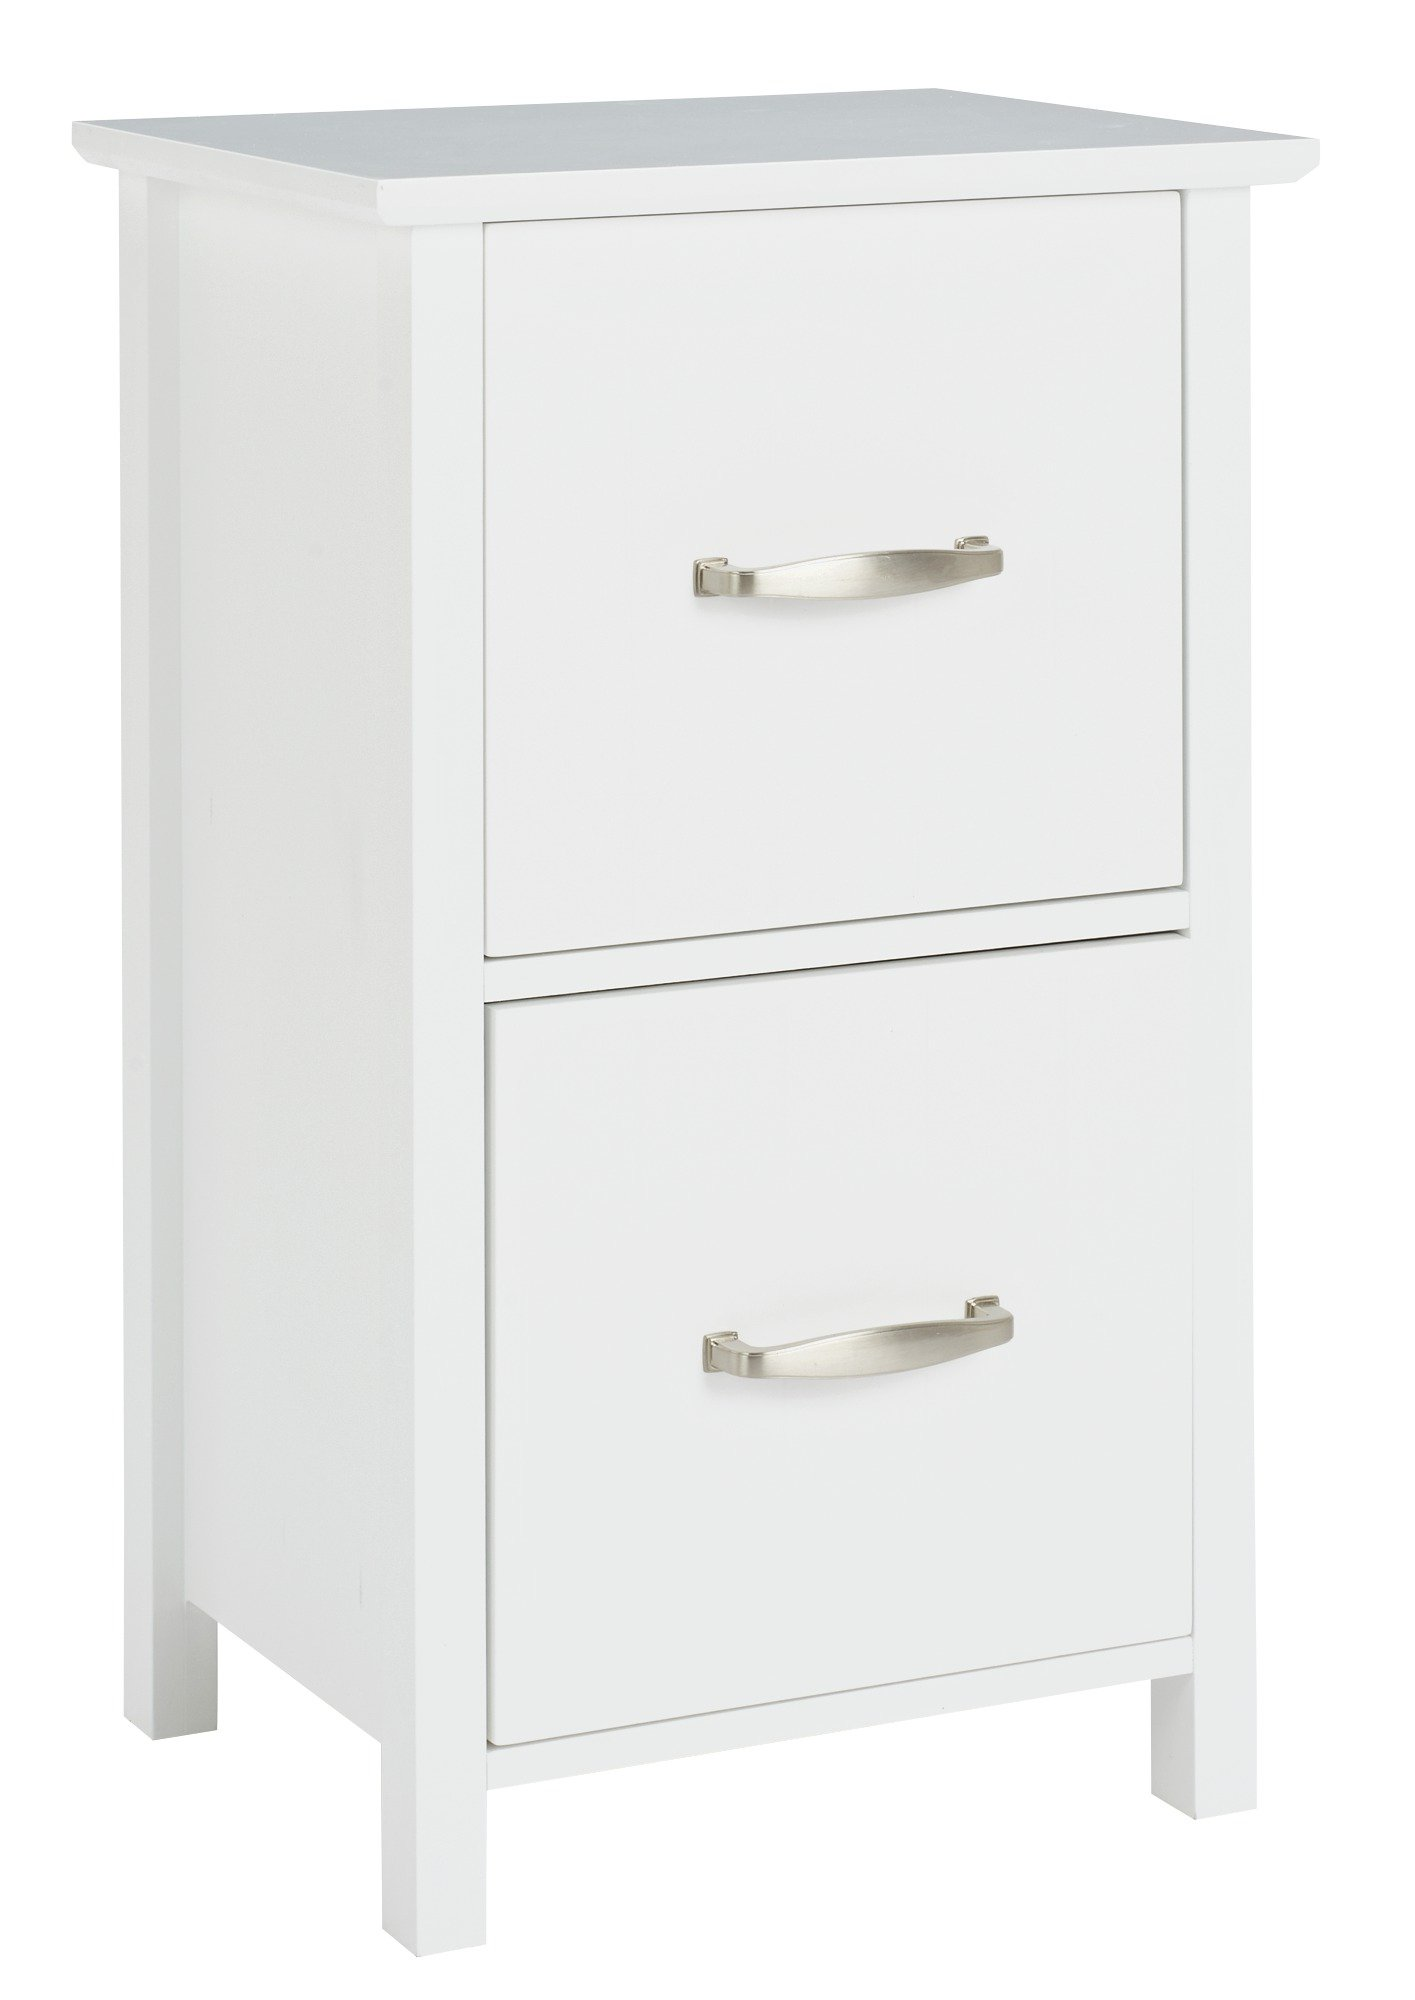 Argos Home New Tongue and Groove 2 Drawer Unit review